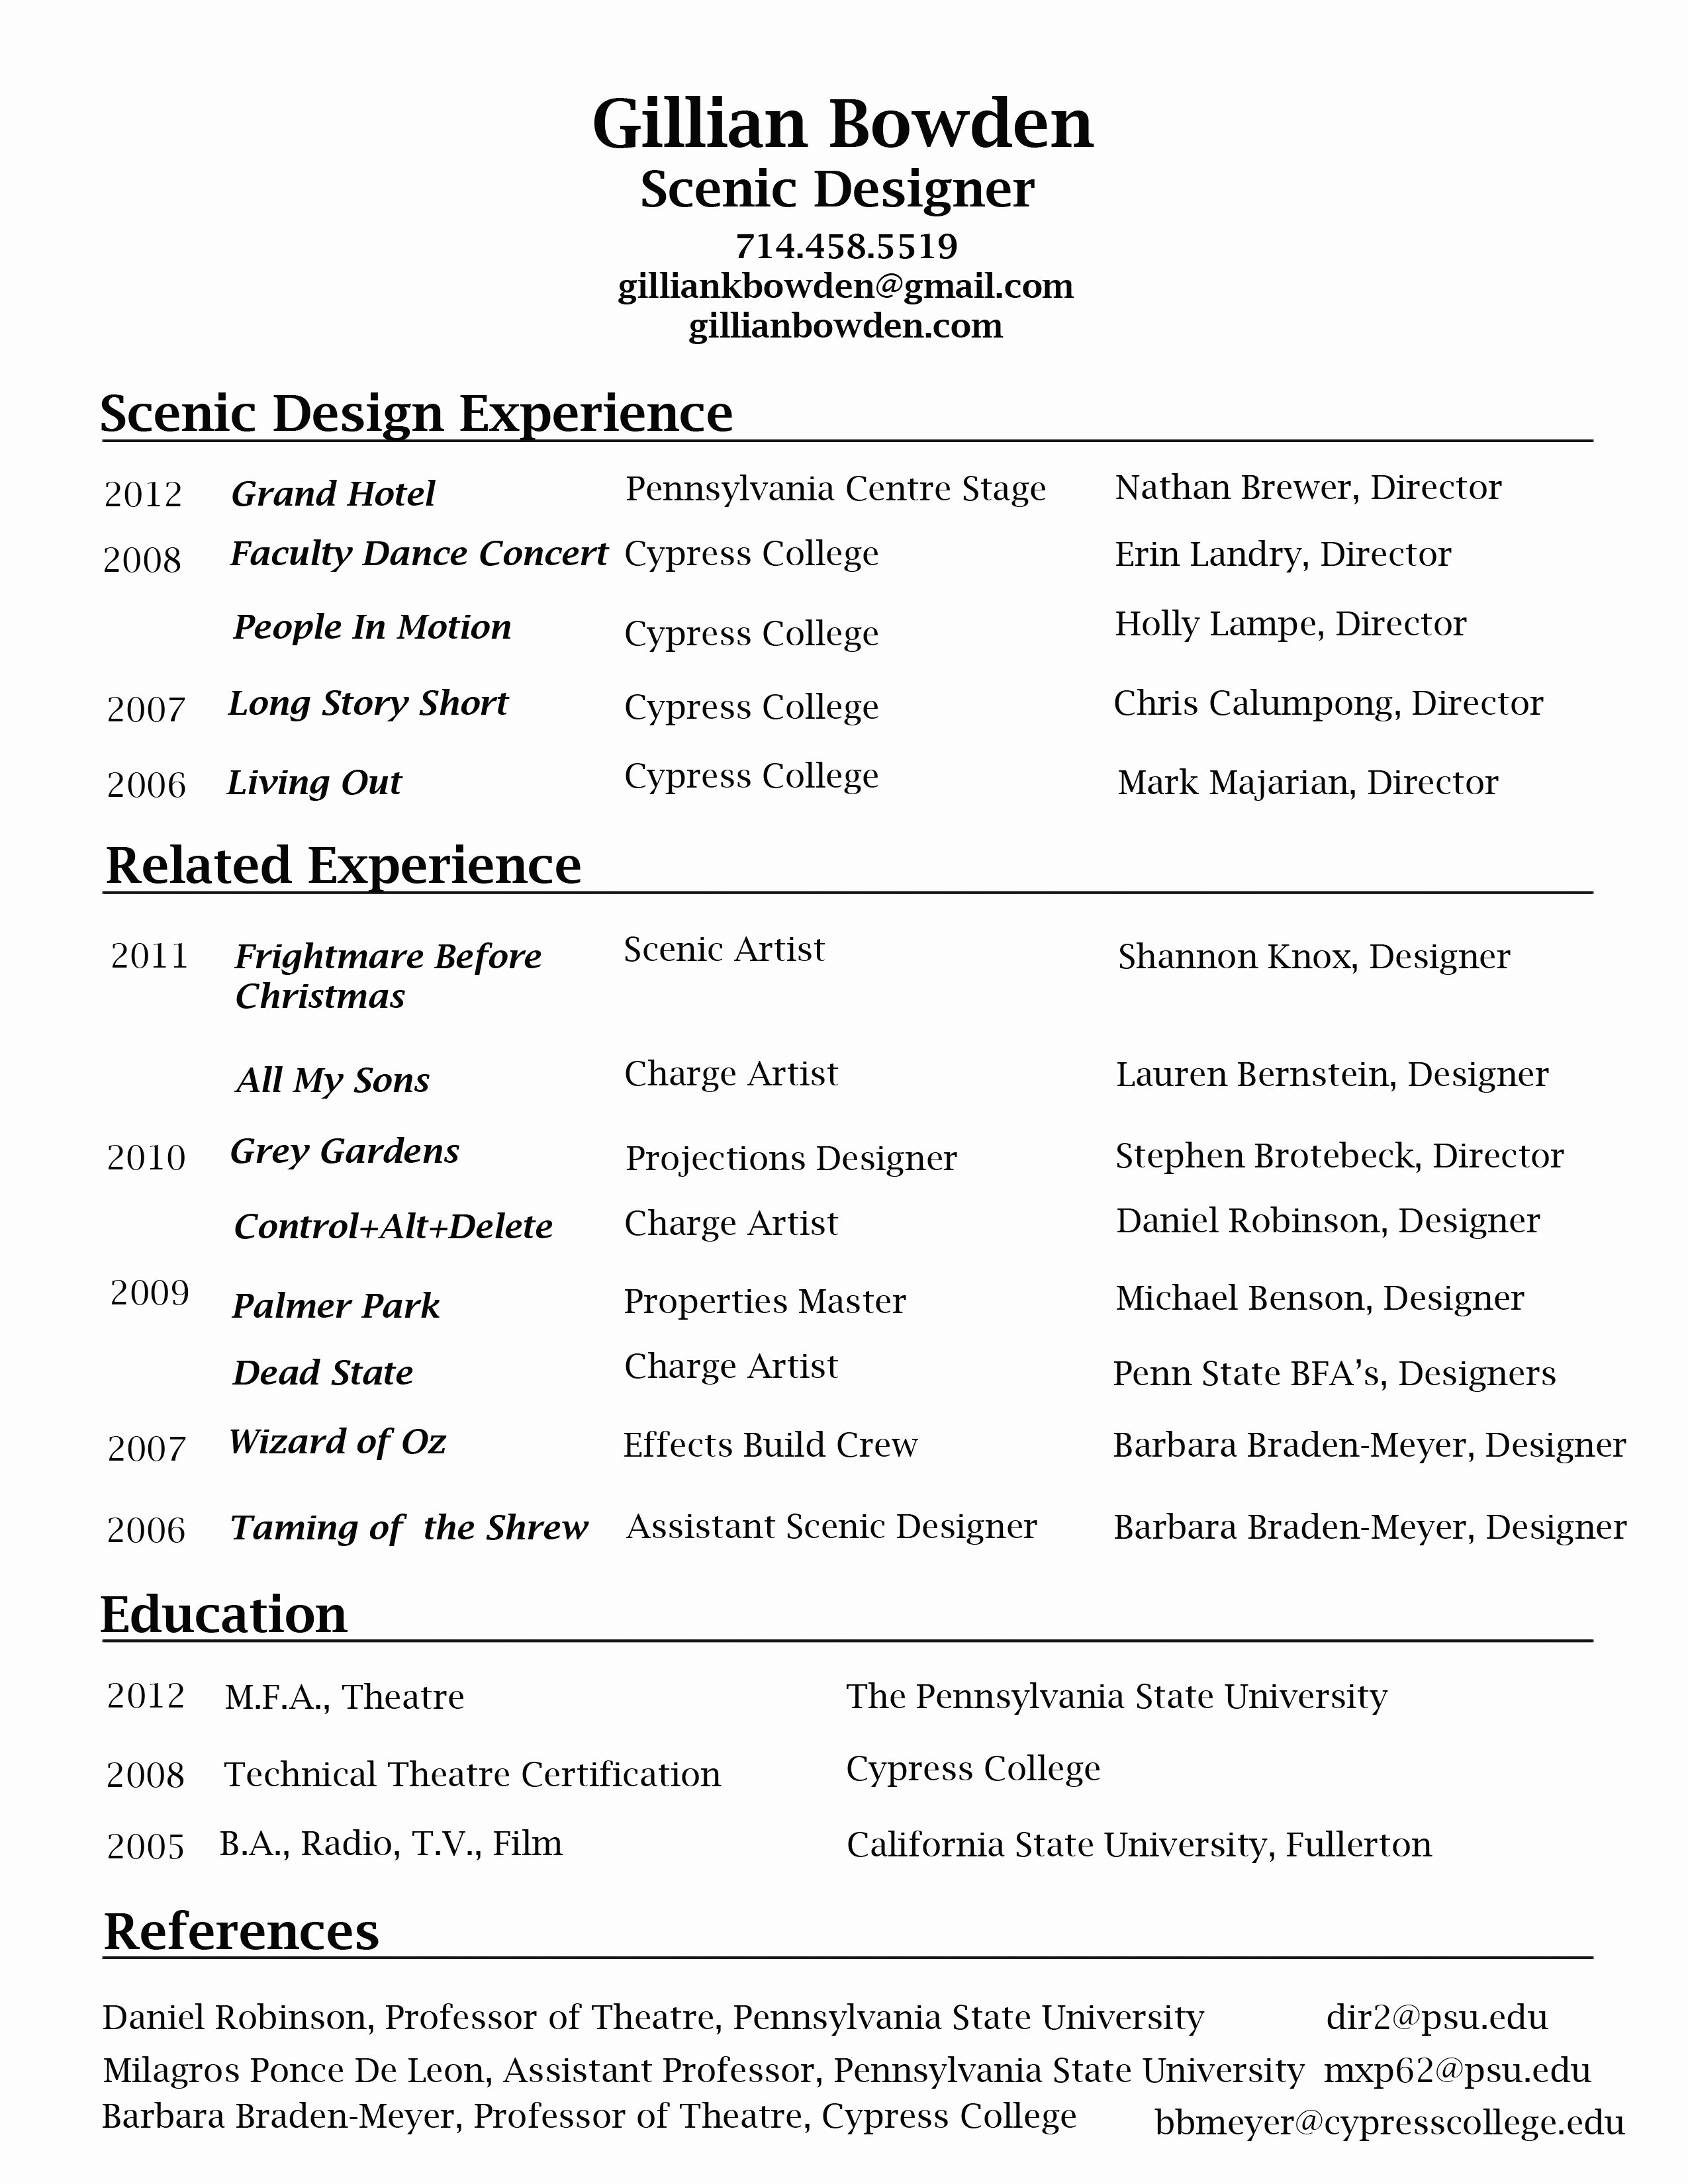 Skill Section Resume Example List Skills for Cv Resume